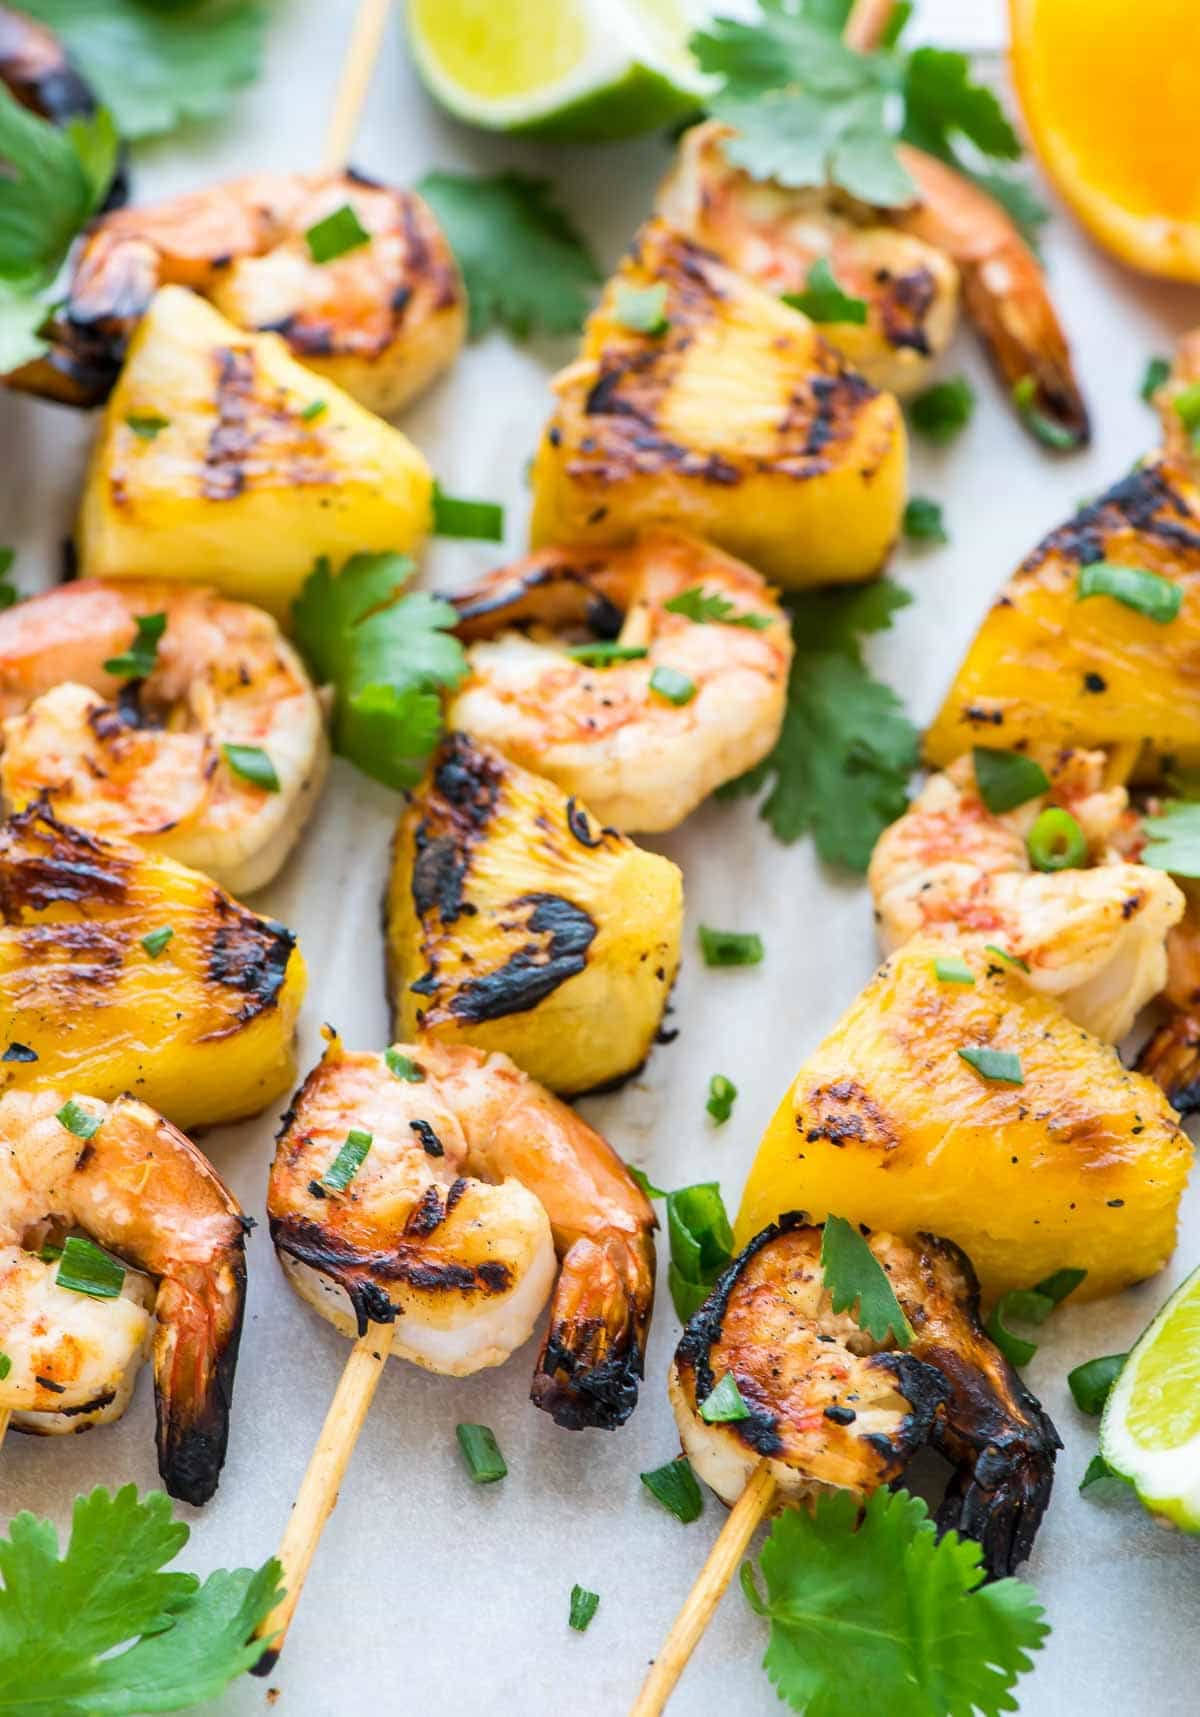 These Coconut Pineapple Shrimp Skewers are the easiest, most flavorful way to cook shrimp! The citrus coconut marinade is AMAZING and the shrimp are so juicy. Perfect for summer grilling and entertaining. @wellplated